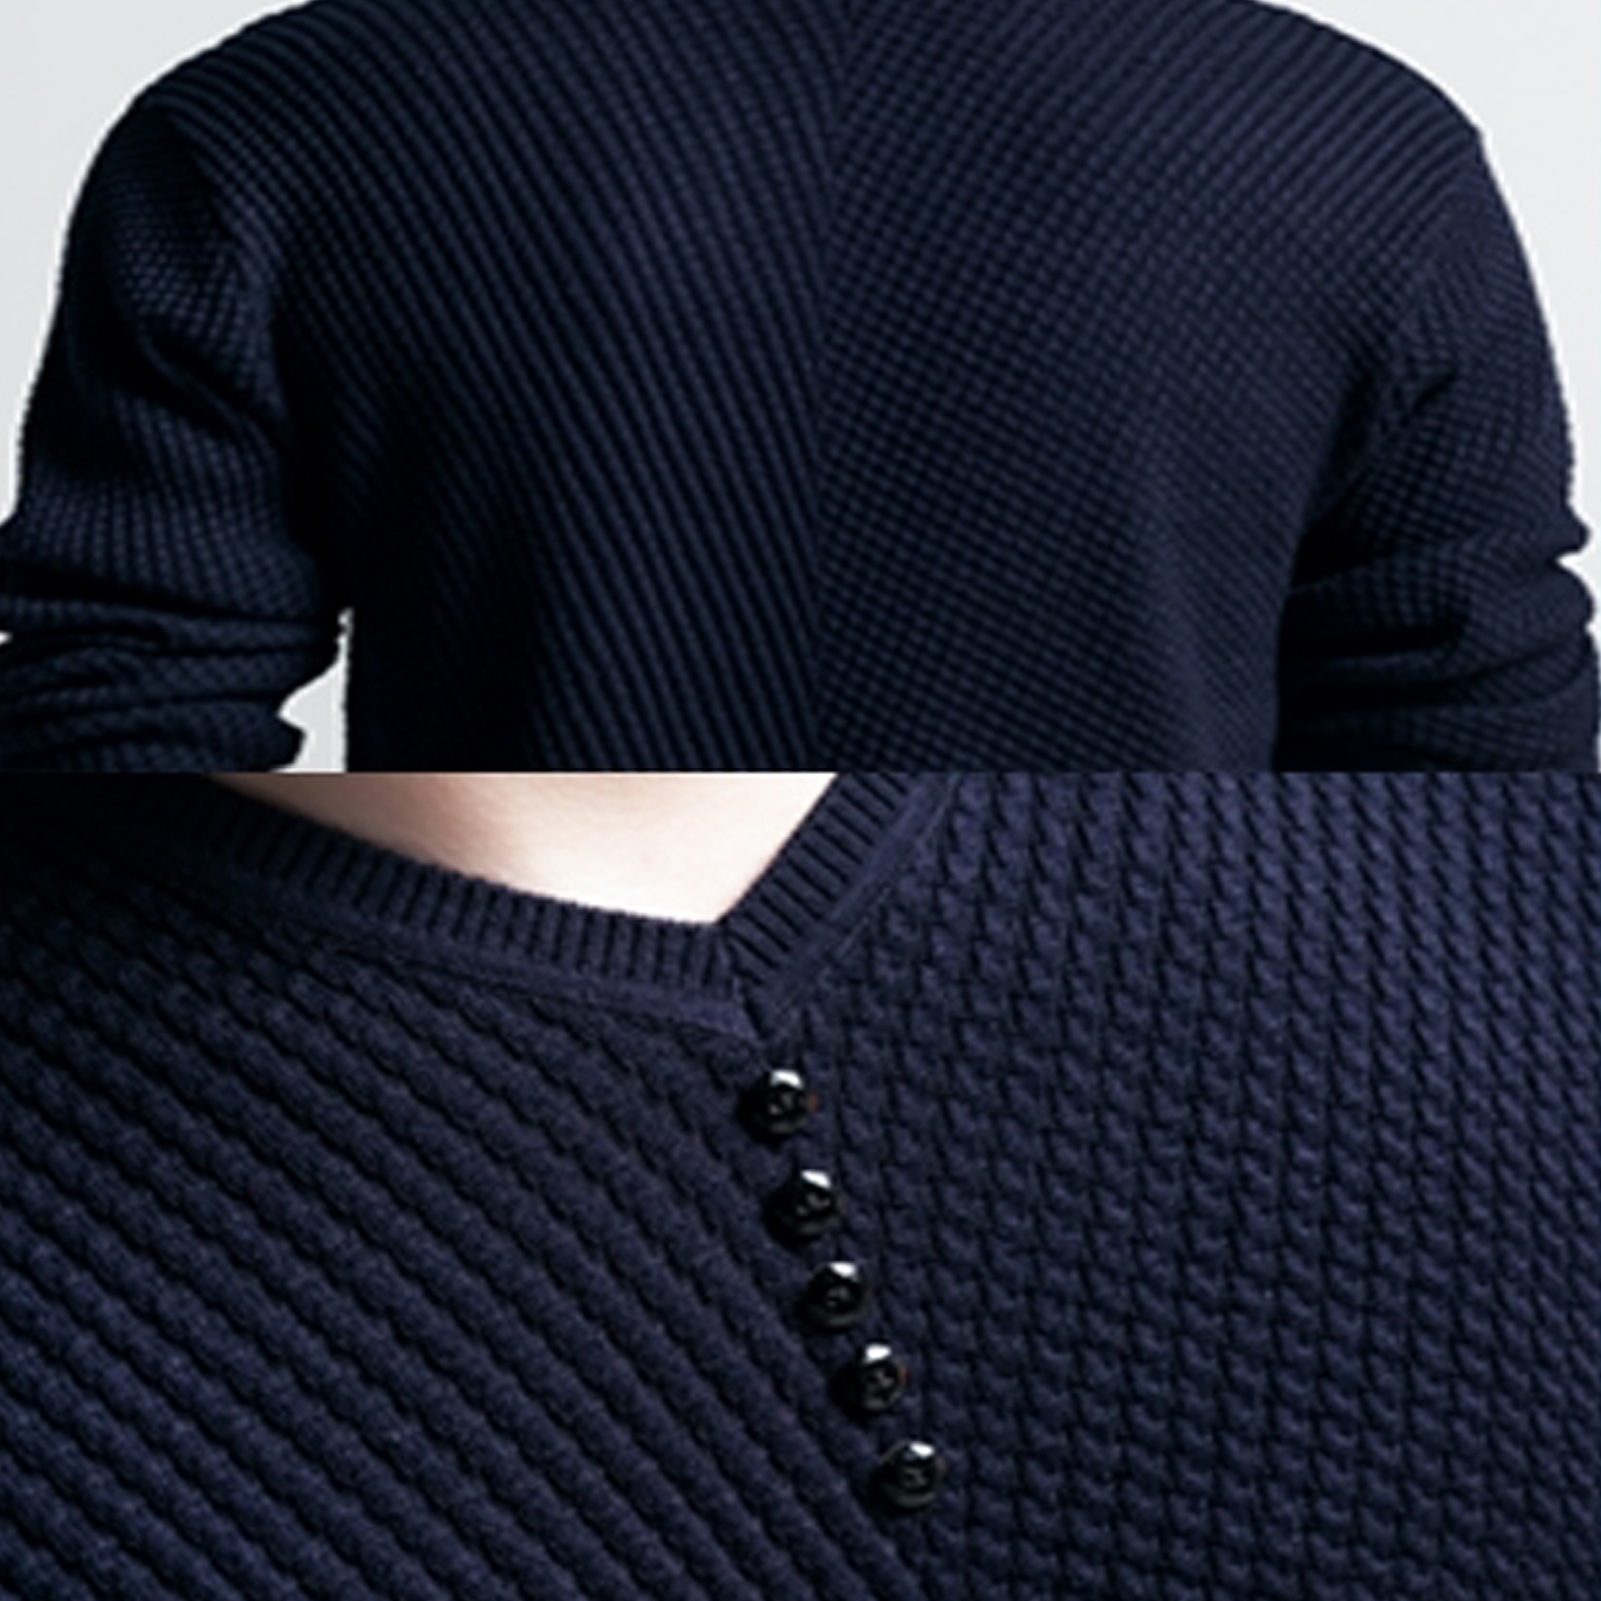 Men Long Sleeve Solid Color Buttons Decor Knitwear Plus Size Bottoming Sweater Men's Knitted Sweaters Pullover Men Knitwear 2020 3